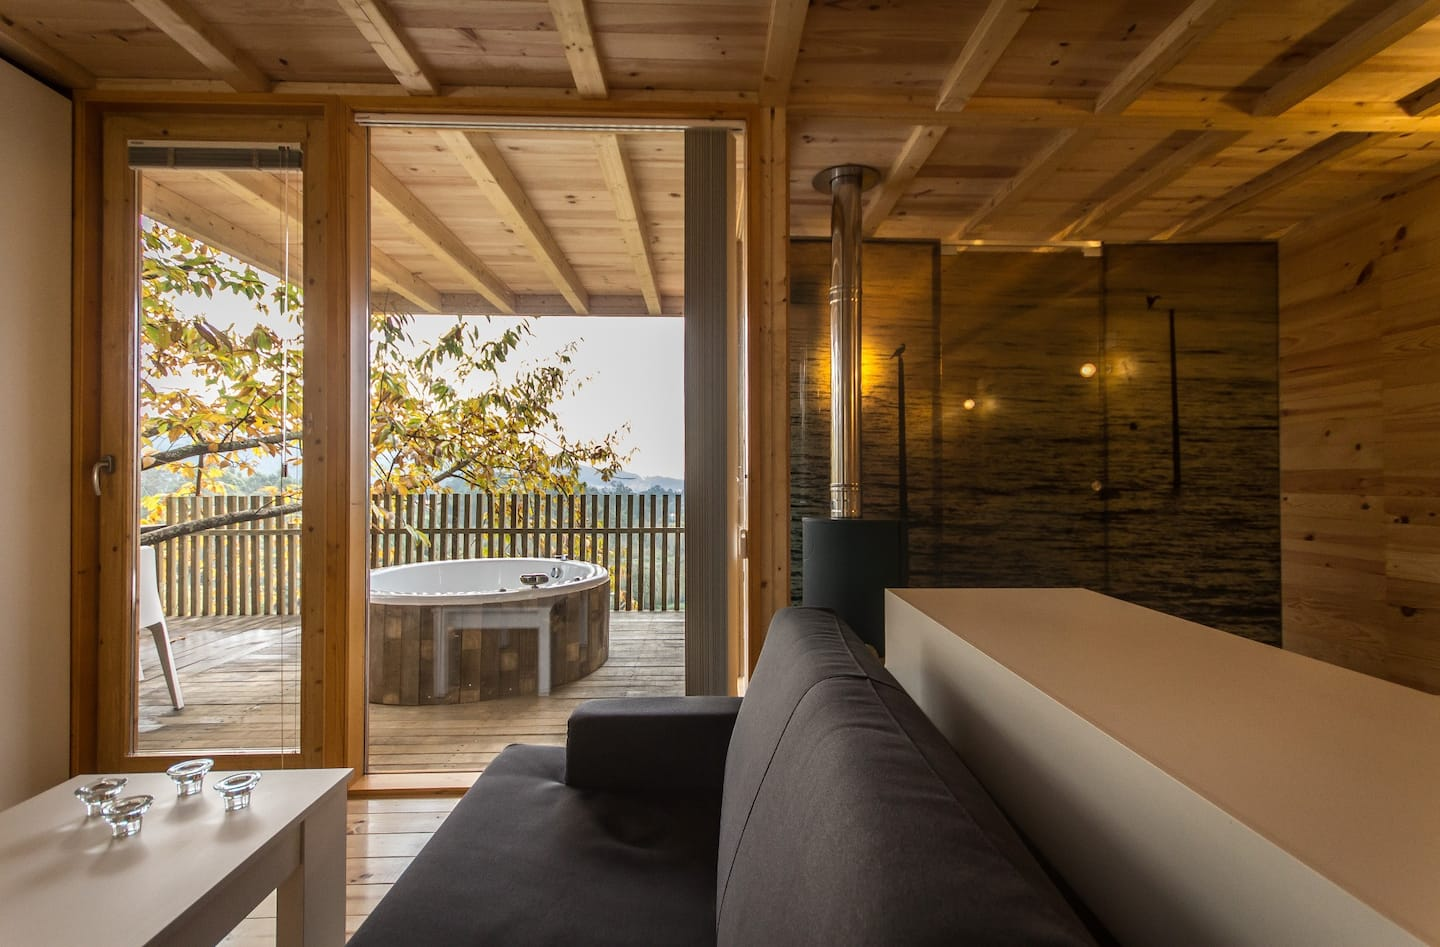 Treehouses in Spain with balcony hot tub